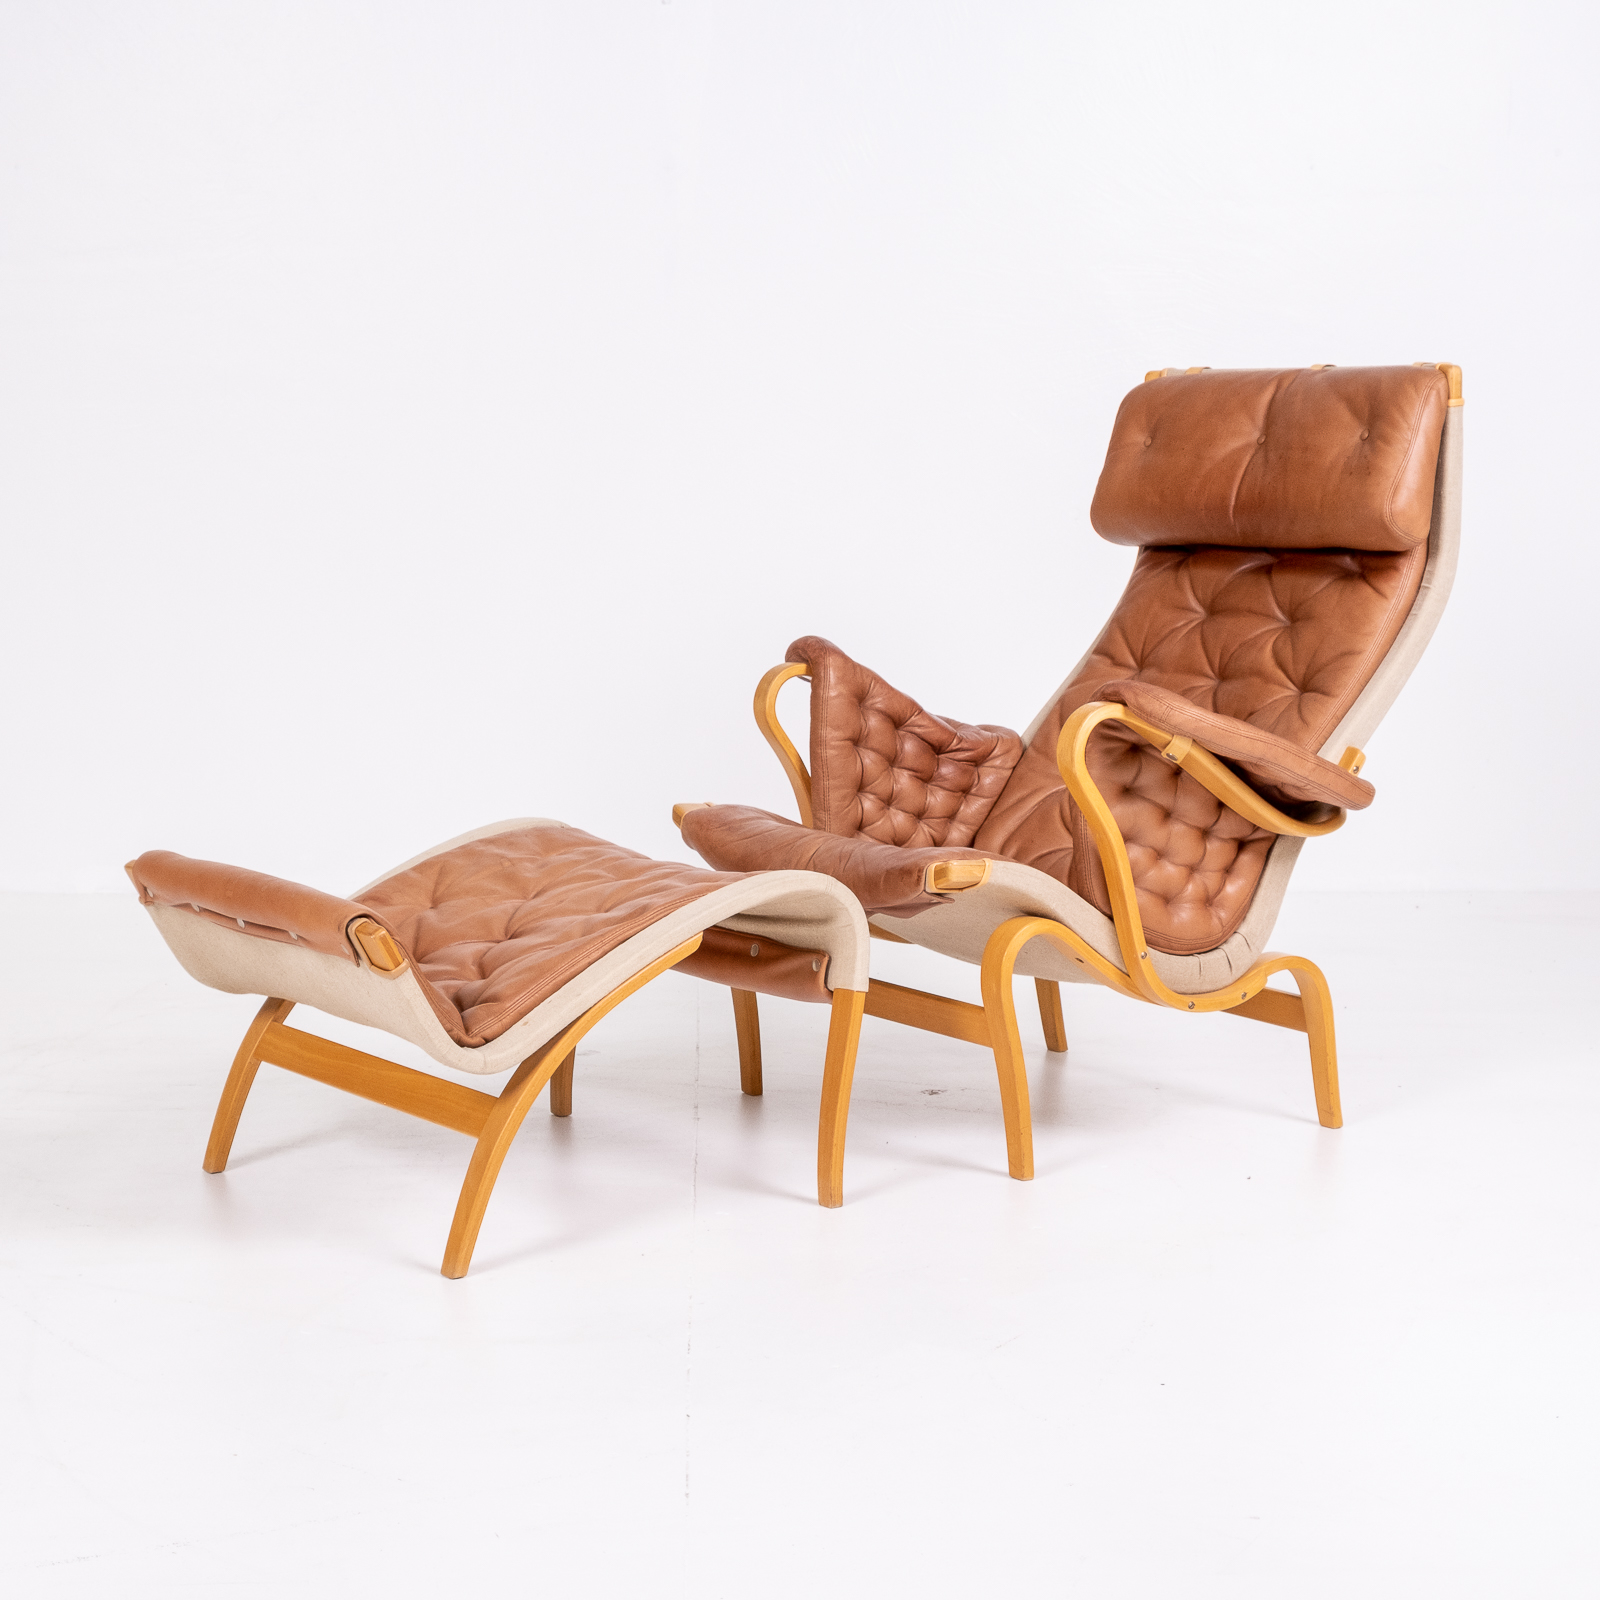 Pernilla 69 Chair With Footstool By Bruno Mathsson For Dux, 1960s, Sweden 03